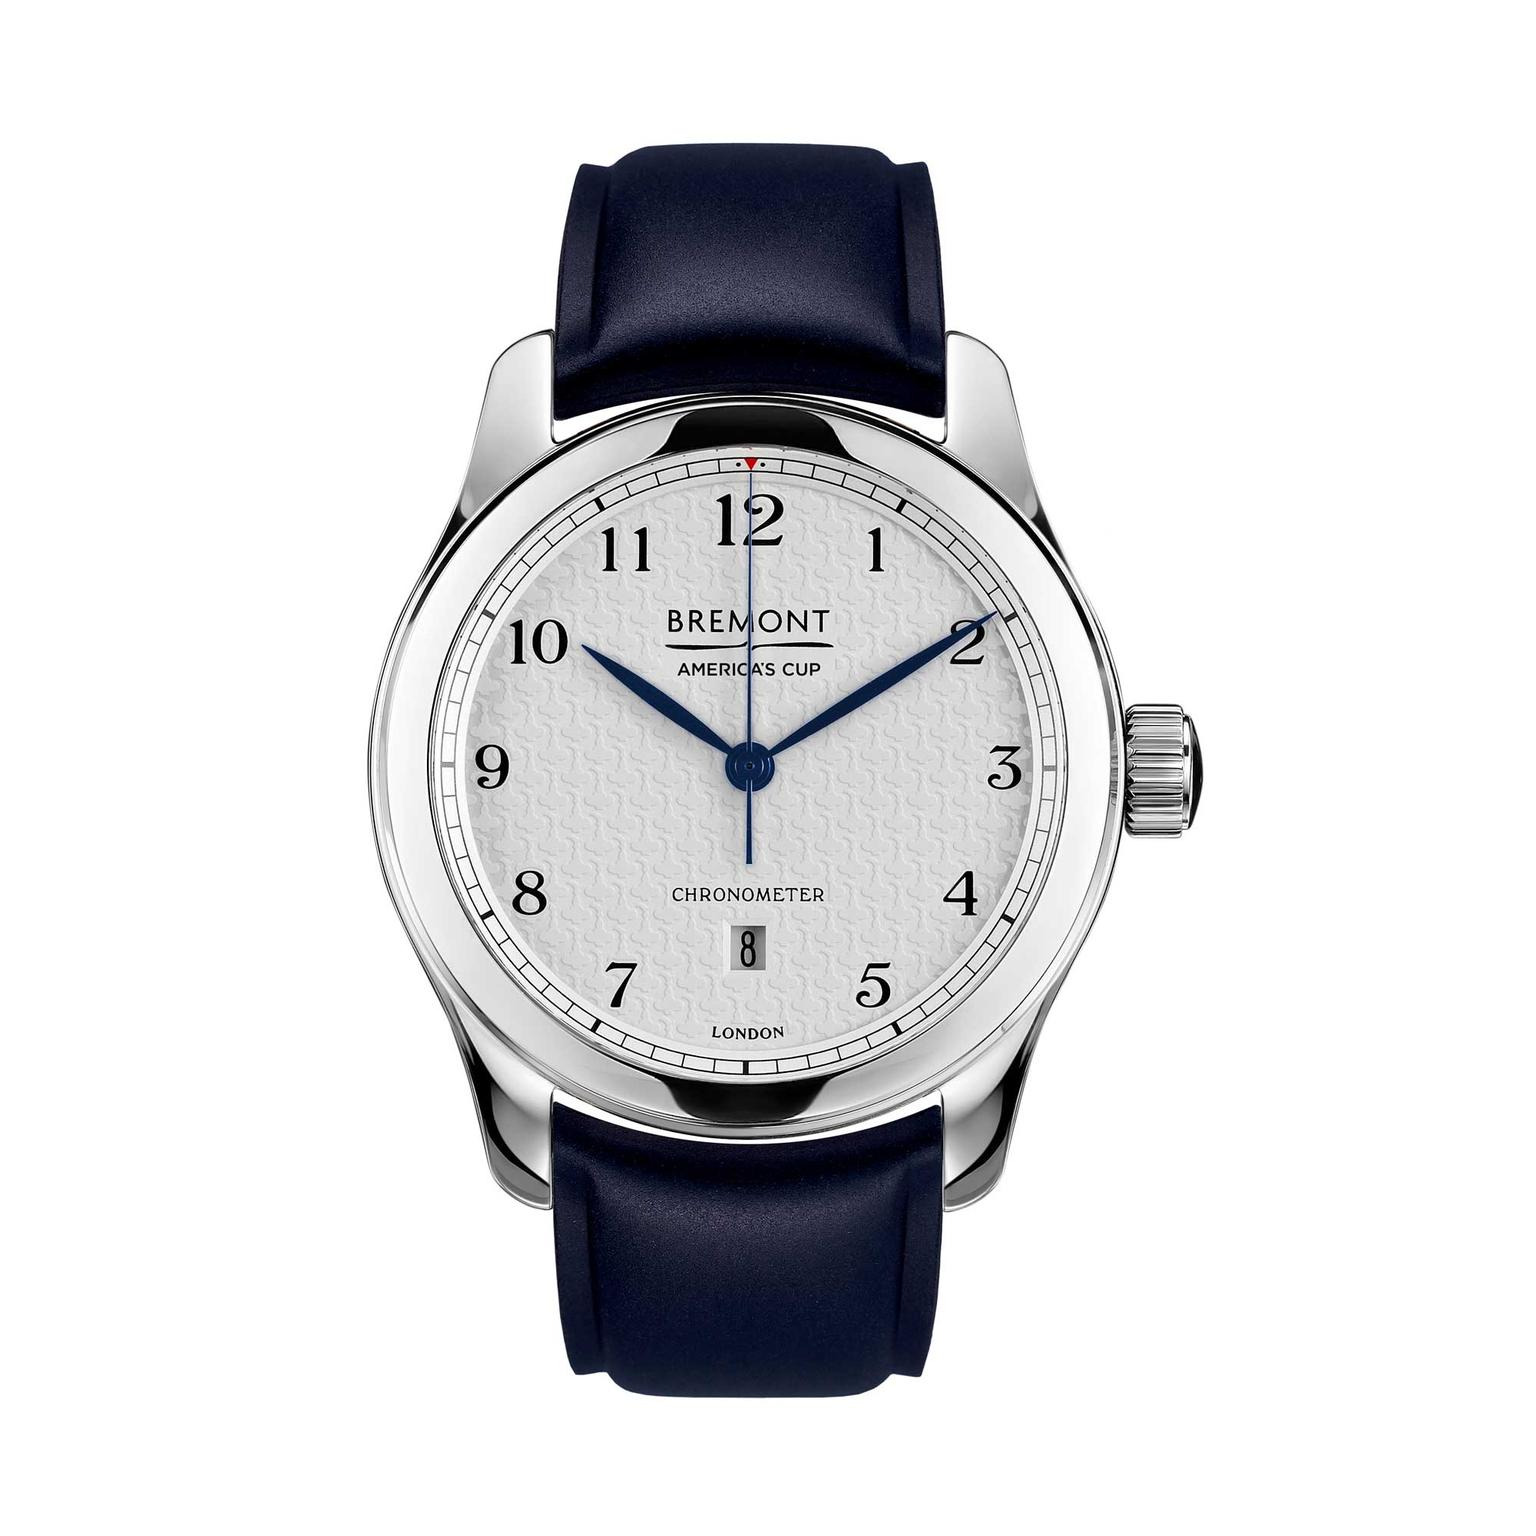 Bremont AC I watch